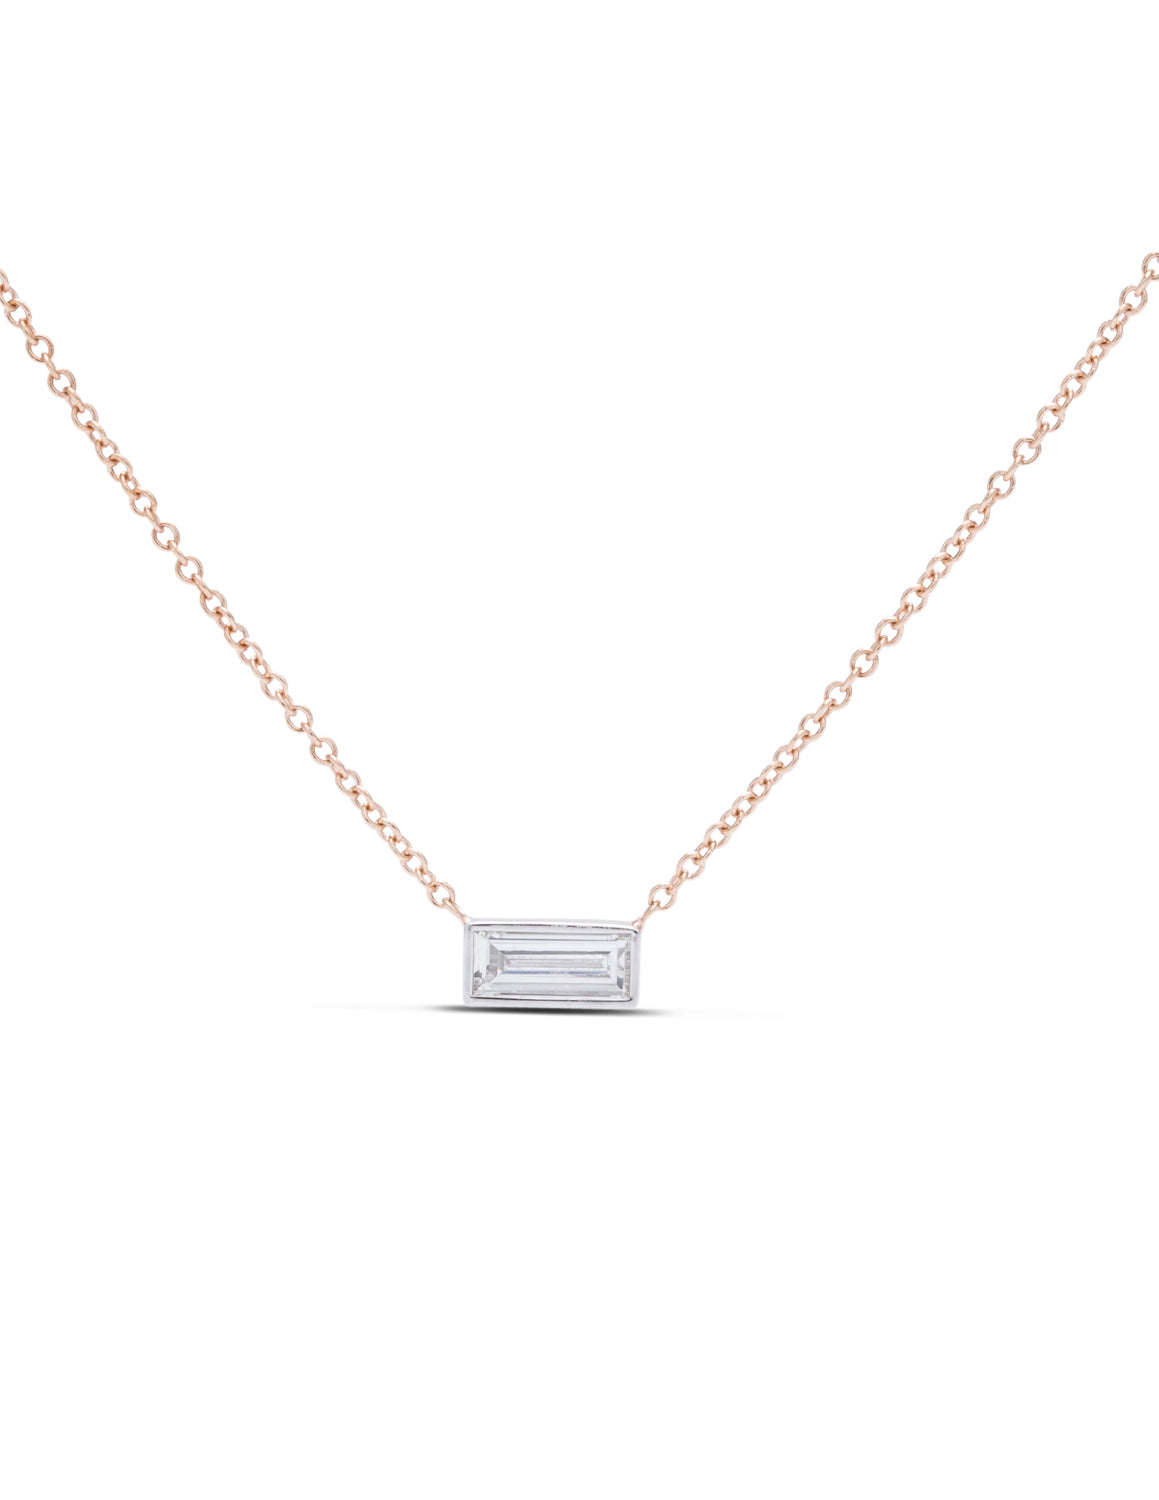 Bezel Set Diamond Necklace - Charles Koll Jewellers